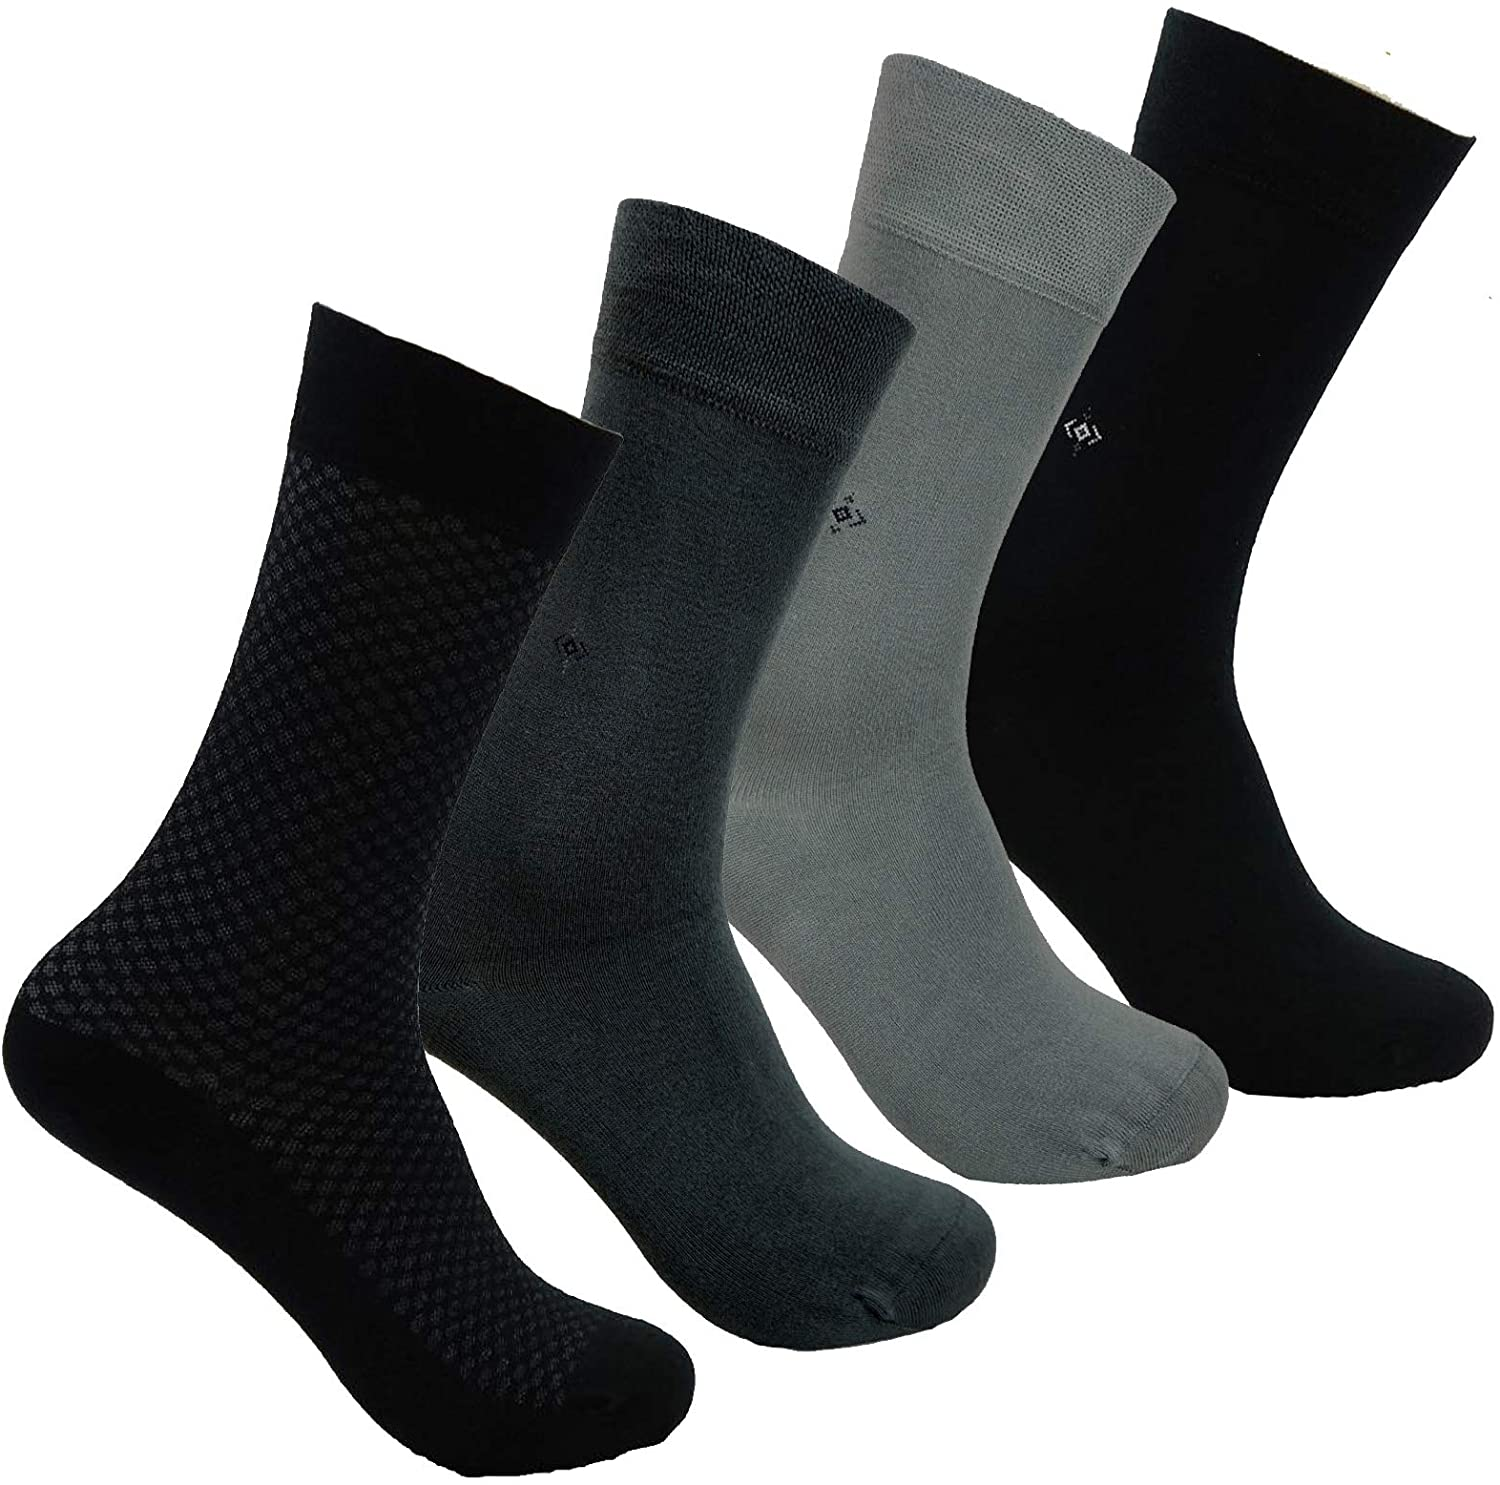 Mens BAMBOO SOCKS - 4 Pair, Natural, Antibacterial, Scented, Cashmere Touch - Made In TURKEY